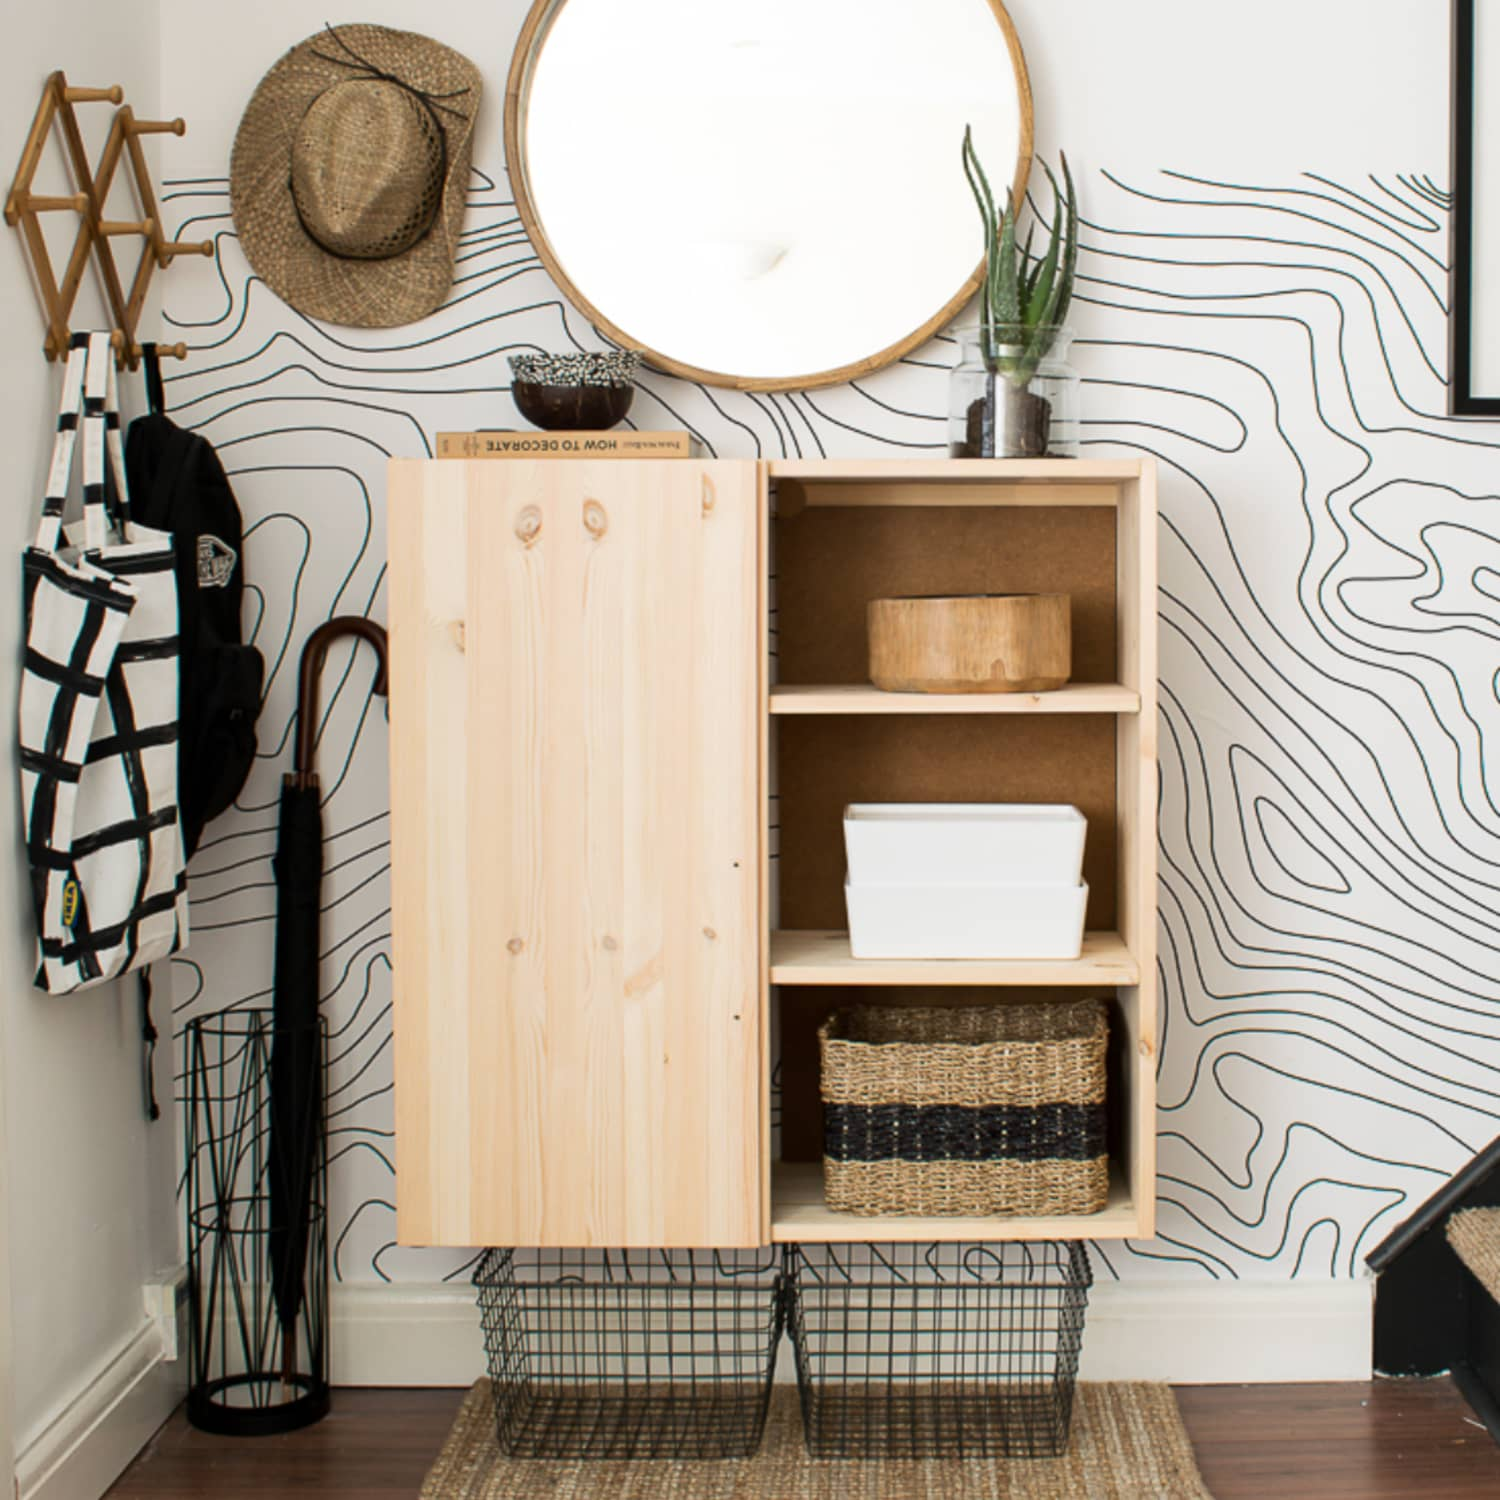 Storage Ideas For Small Entries Smart Organization For Small Entryways Apartment Therapy,Colors That Go With Black And White Polka Dots